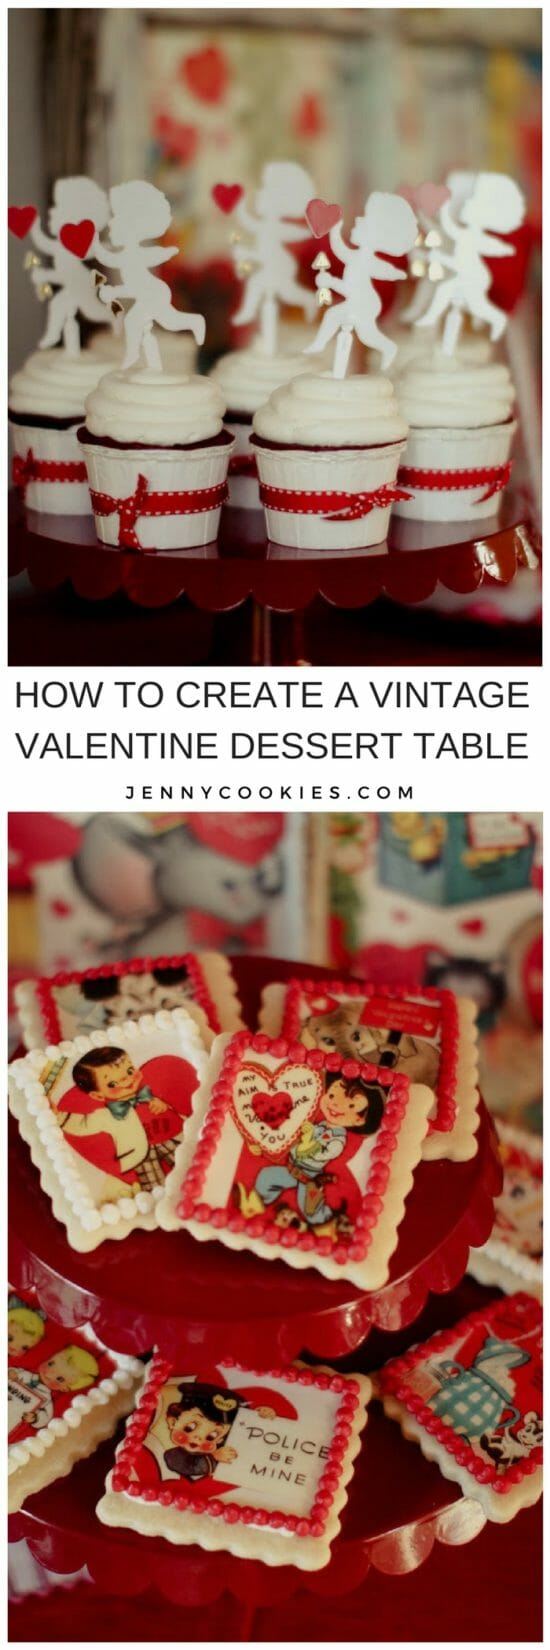 Be Mine | Vintage Valentine Dessert Table | Valentine's Day dessert table | valentine inspired dessert table | dessert table ideas | easy dessert tables | Valentine's Day desserts || JennyCookies.com #desserttable #valentinesdaydesserts #easydesserts